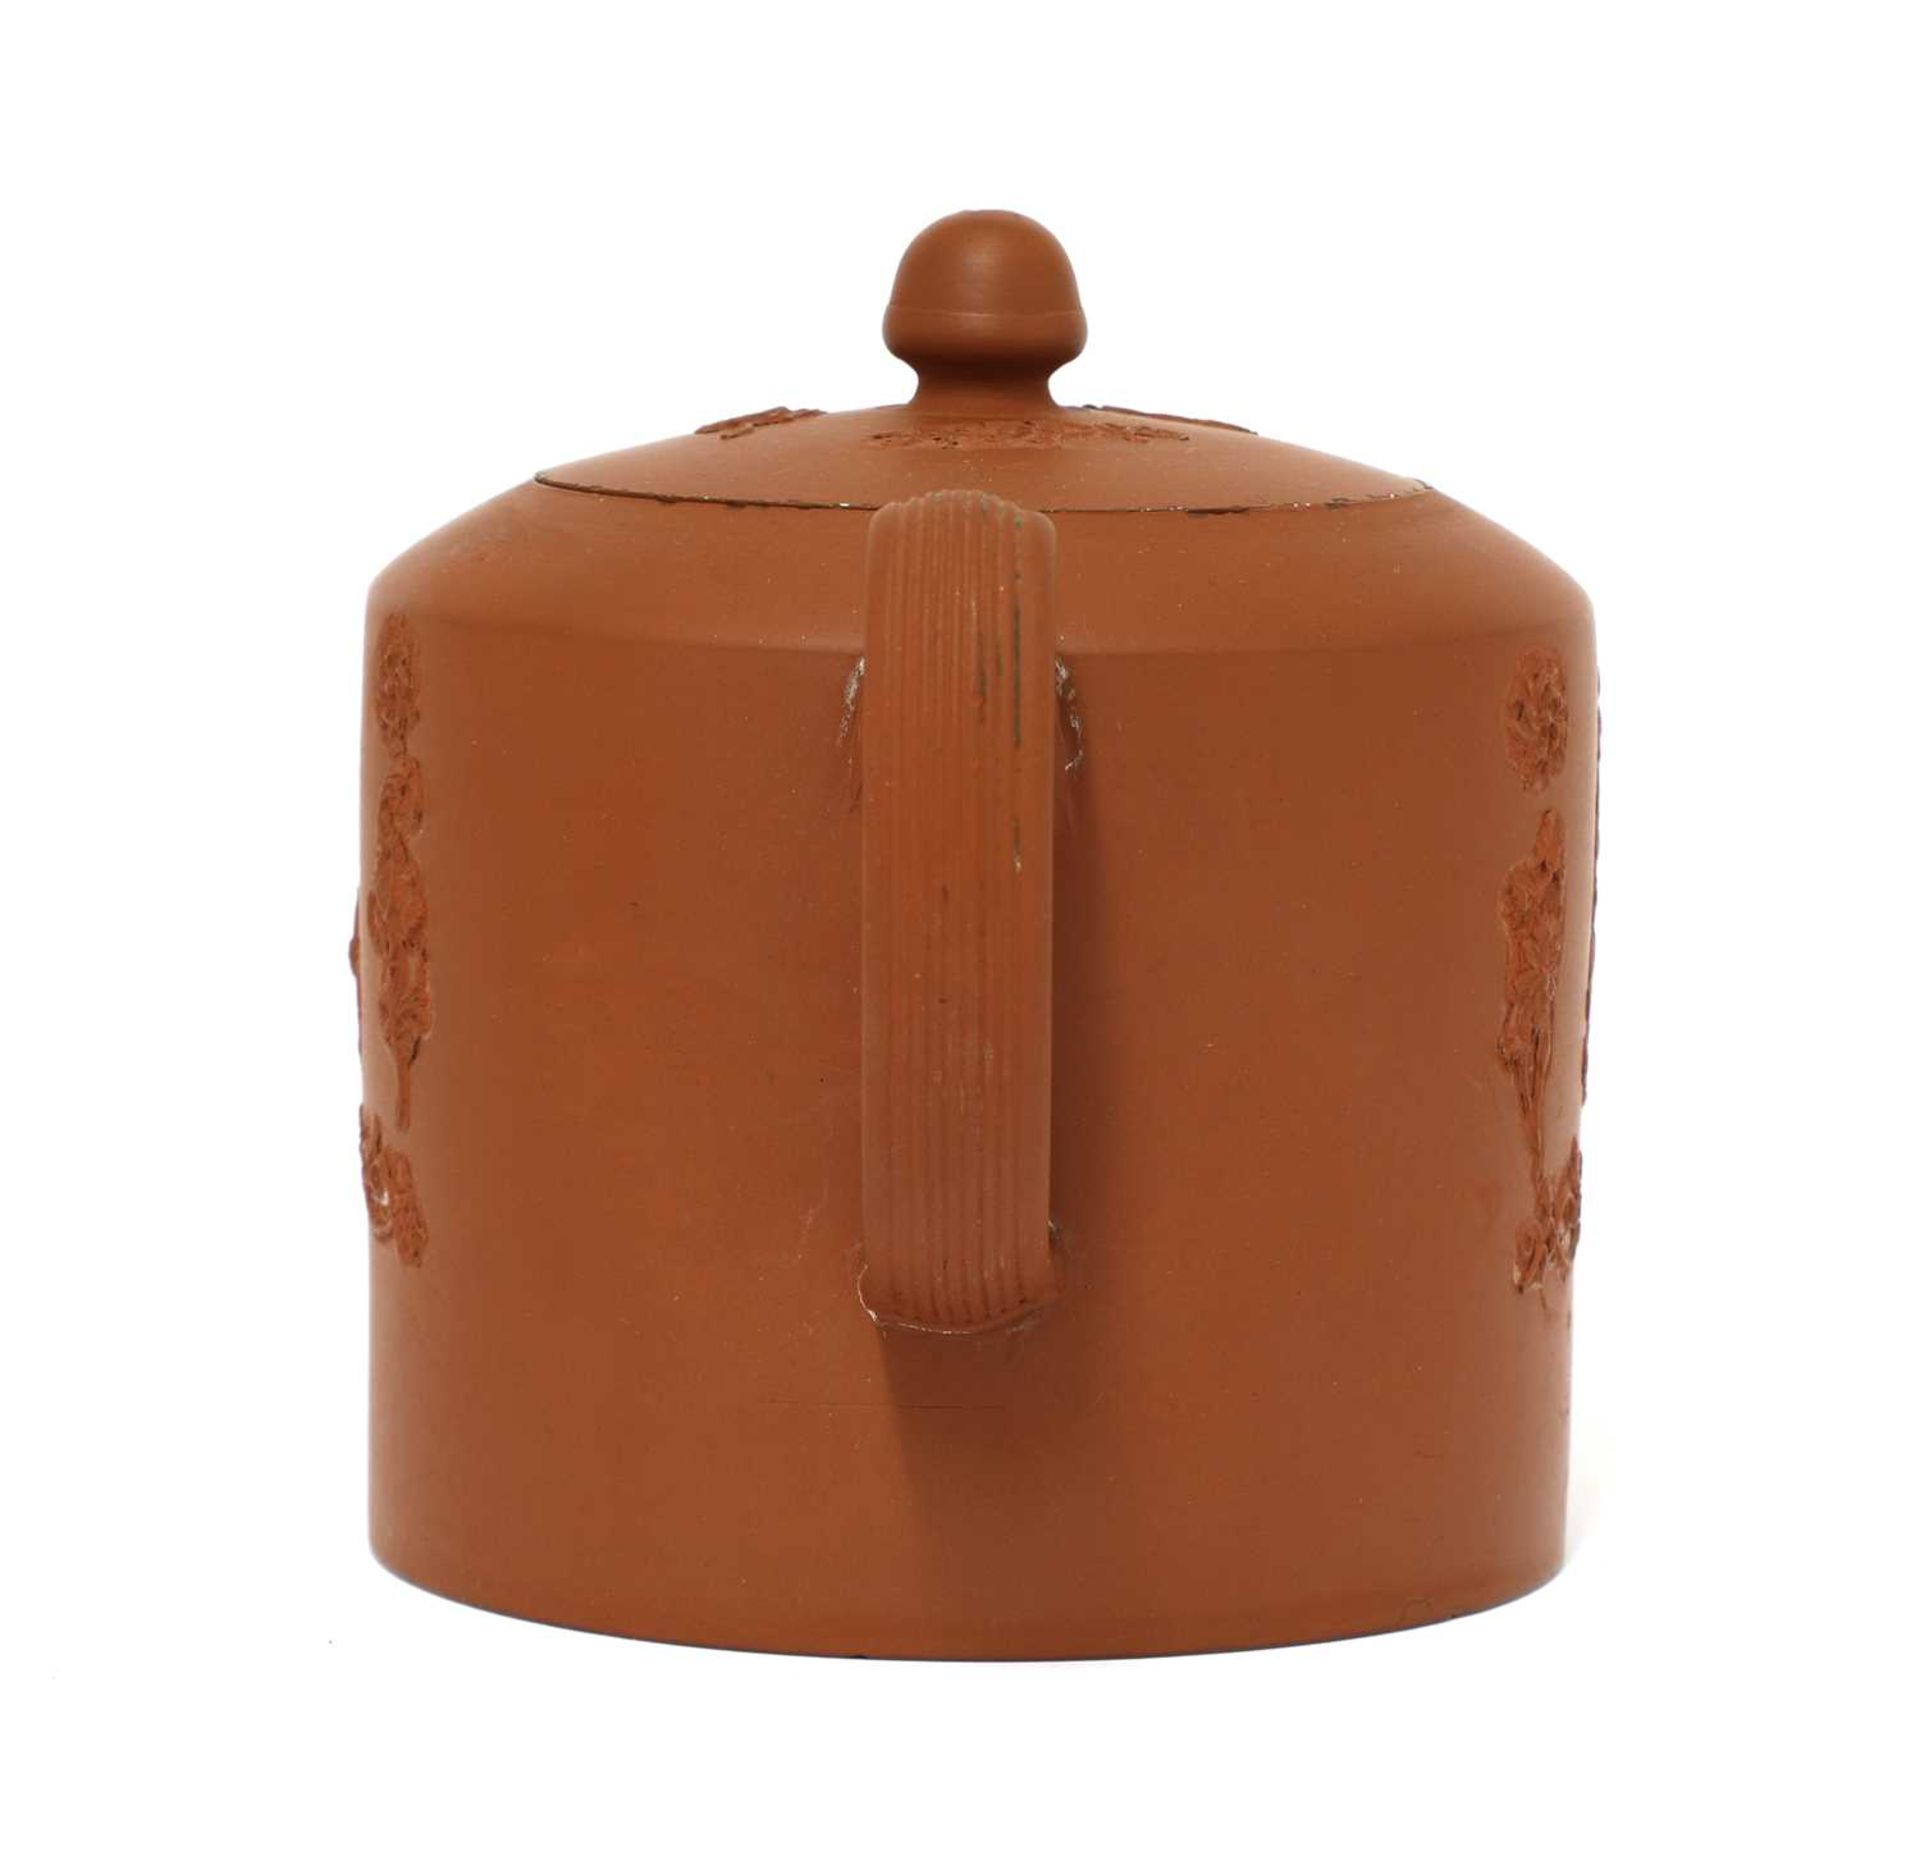 A Staffordshire redware cylindrical teapot and cover, - Image 3 of 4